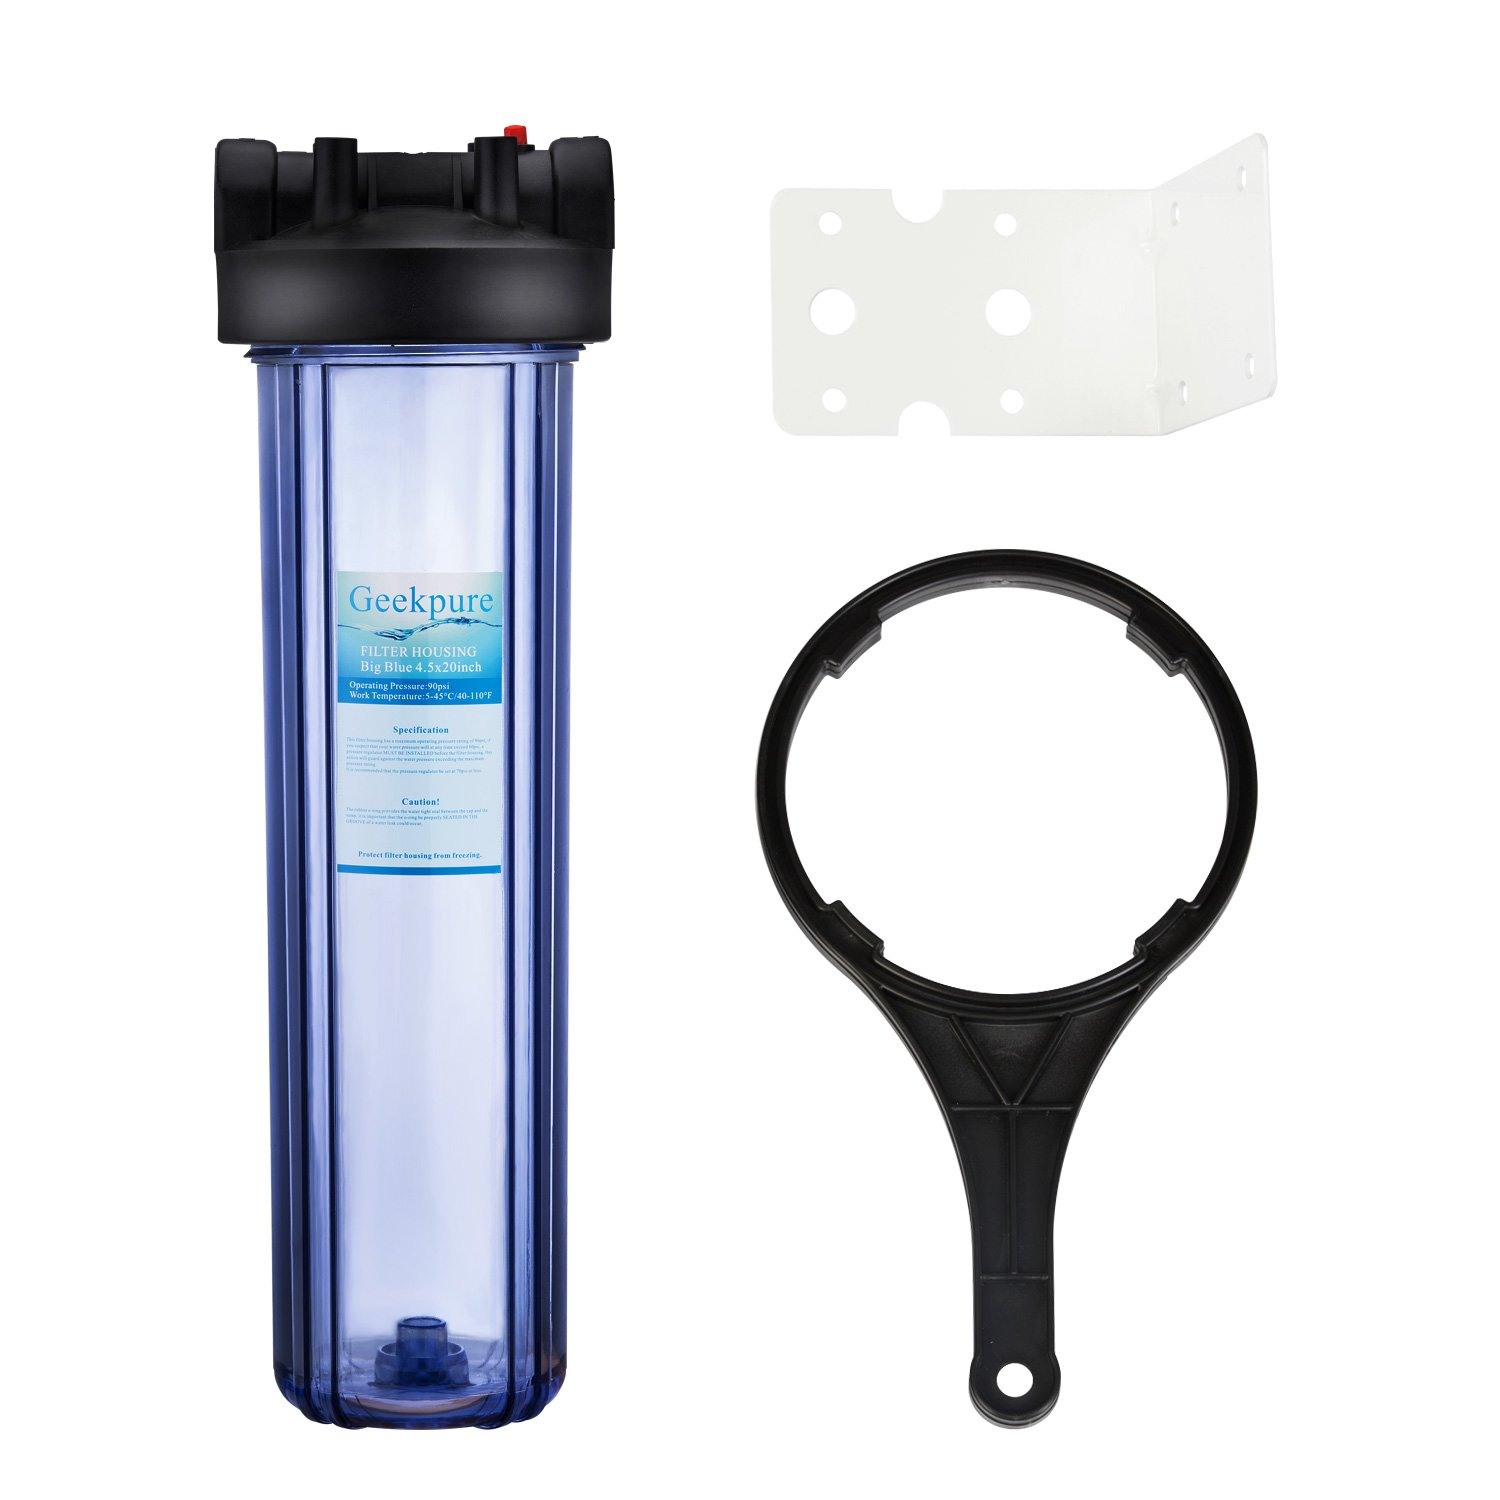 Geekpure Big Blue Water Filter Housing 3/4-Inch Outlet/Inlet with Wrench and Bracket -4.5 Inch x 20 Inch - Clear Housing